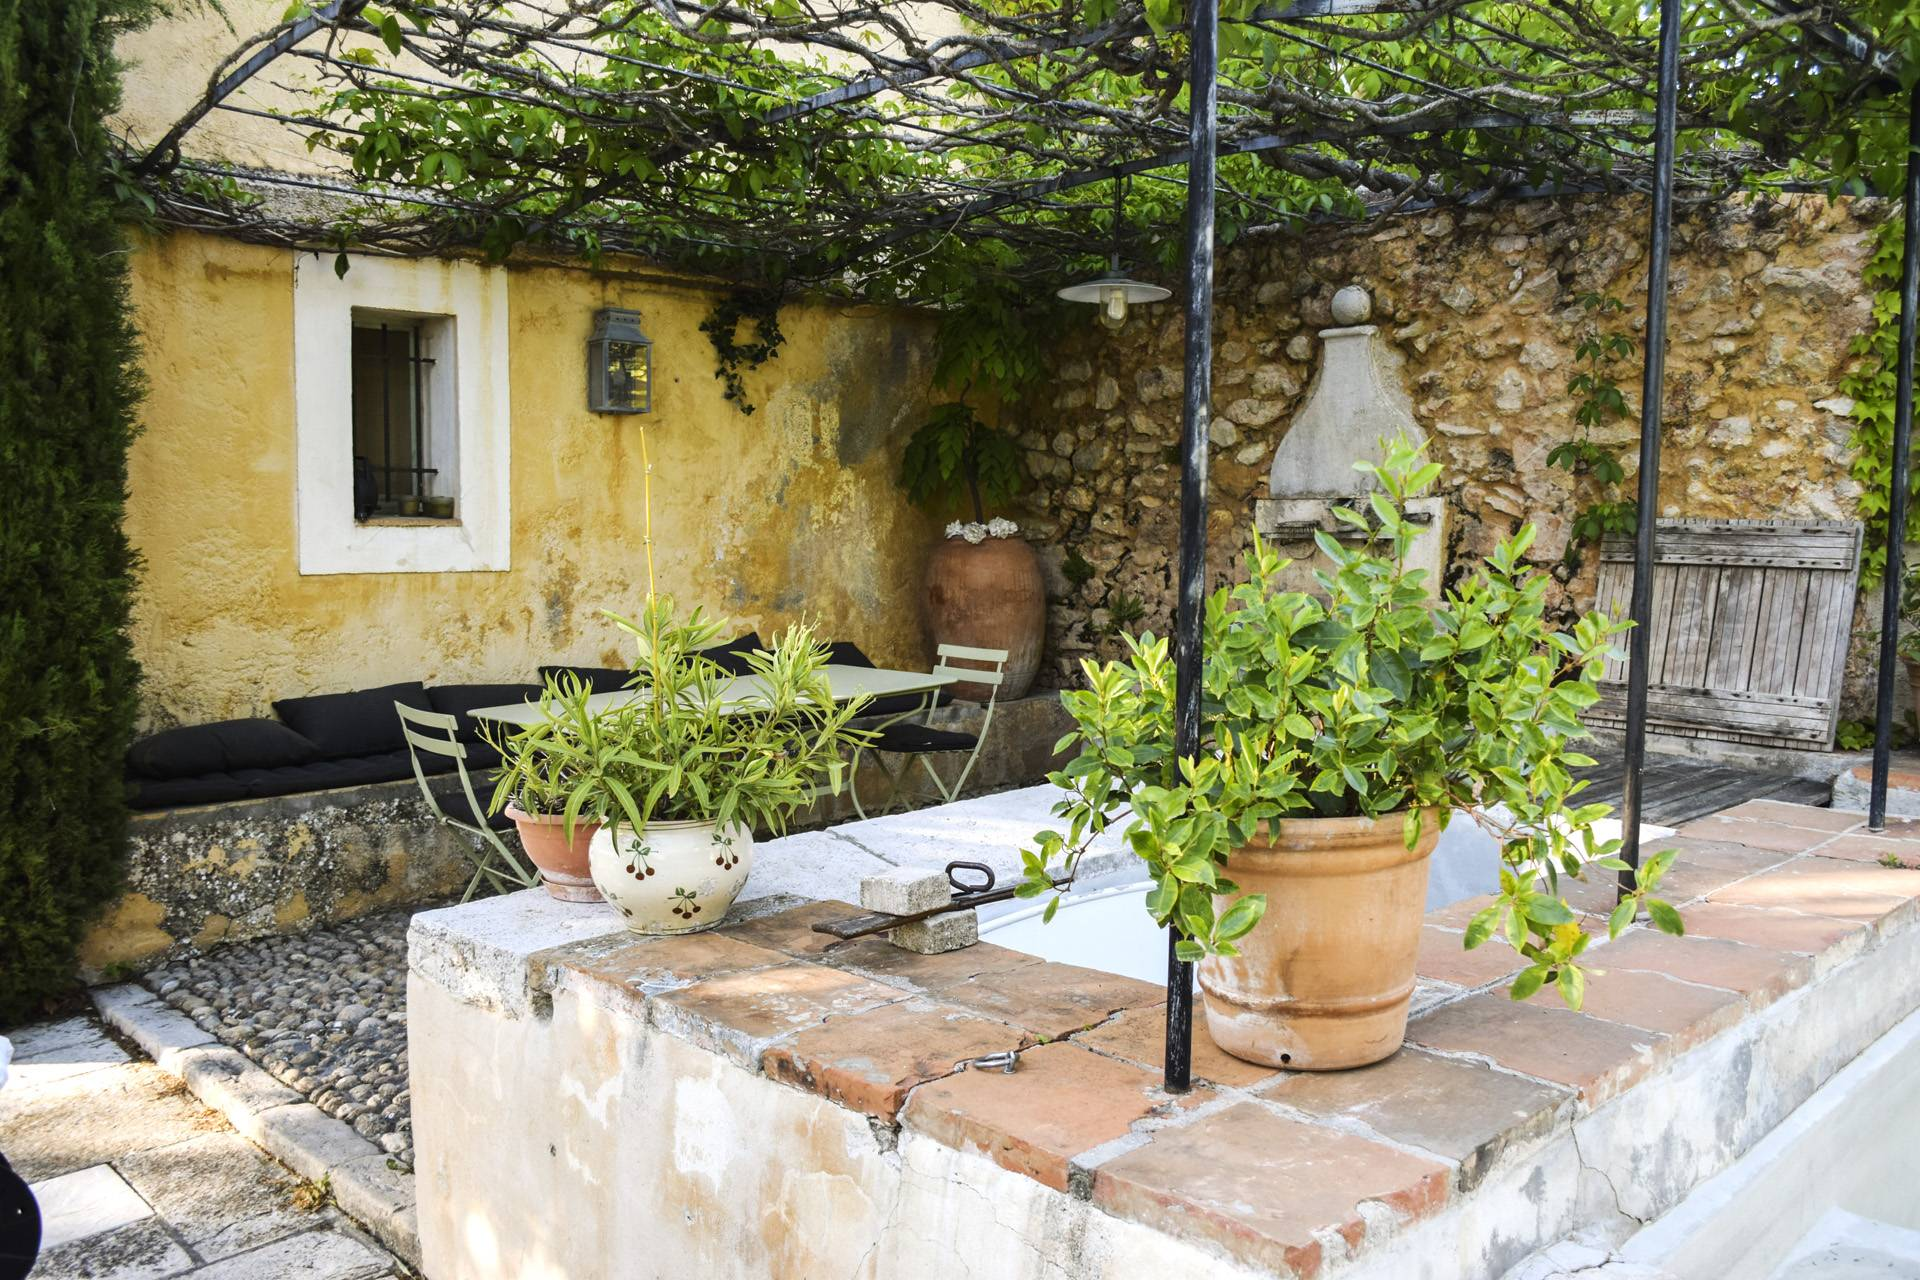 fontain corner renovated country house on 8 ha, swimming pool, caretaker's house, aups var, provence